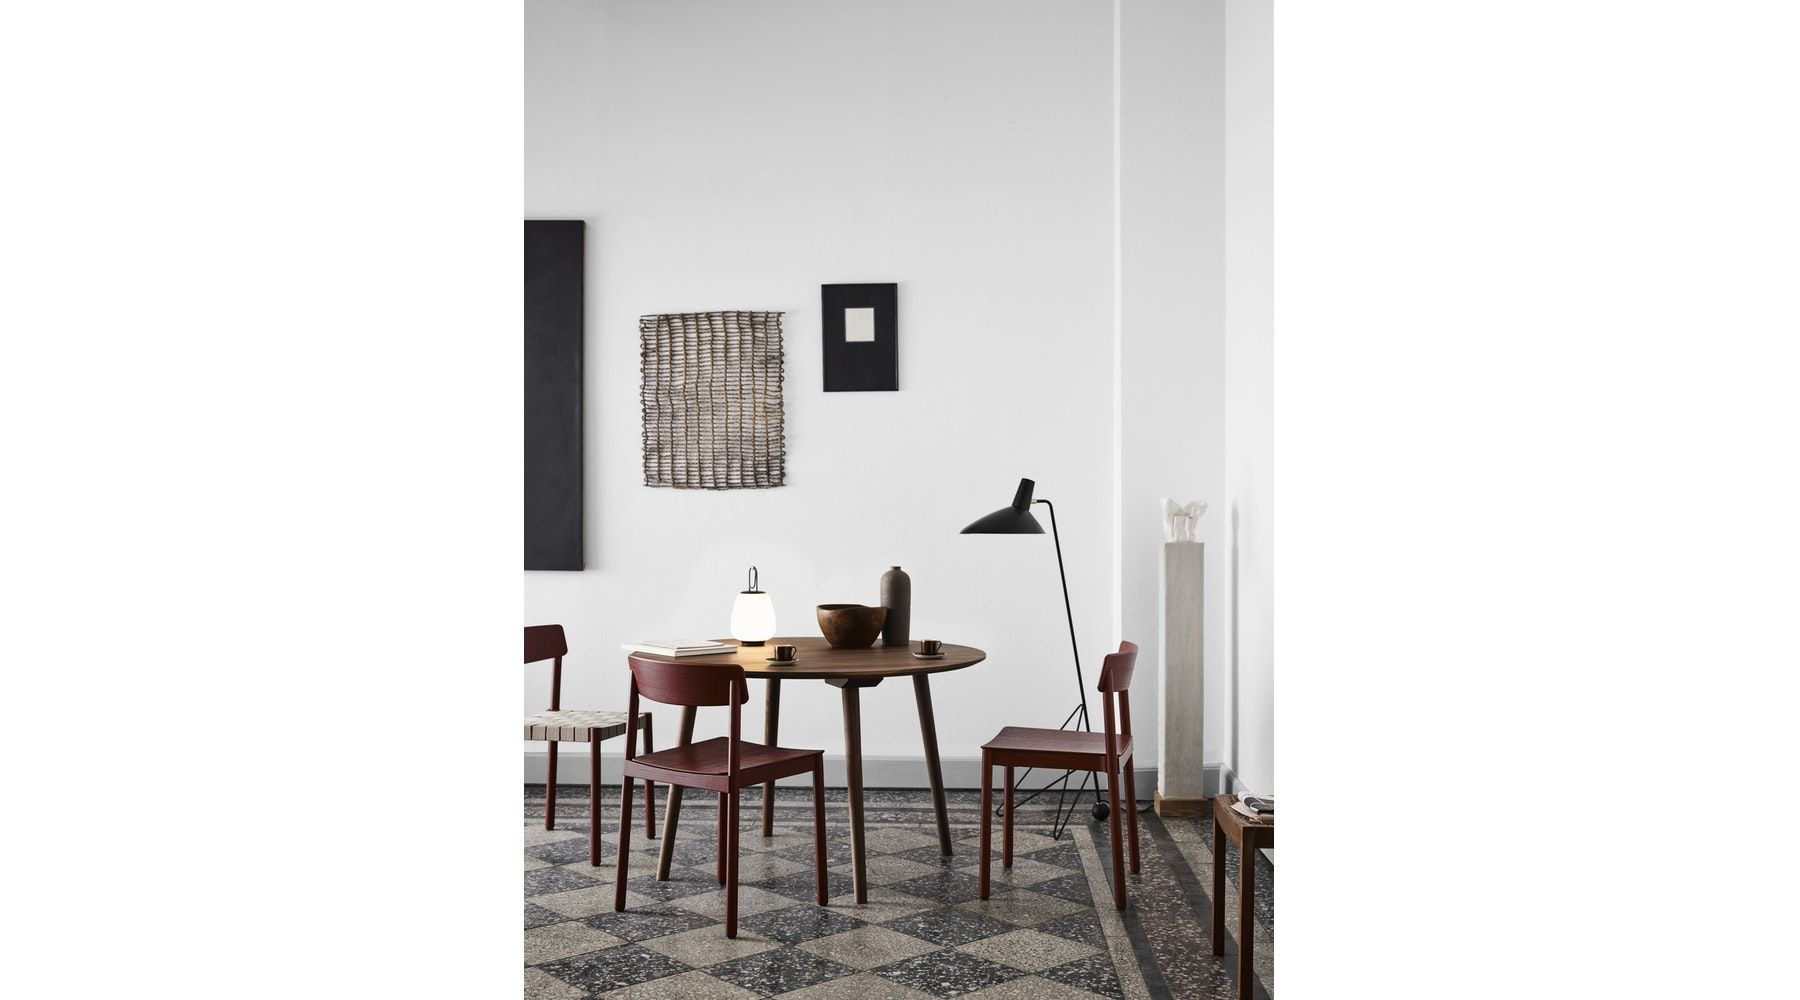 Tripod Floor Lamp Hm8 By Tradition 15 Off Sale In 2020 Tripod Floor Floor Lamp Tripod Floor Lamps